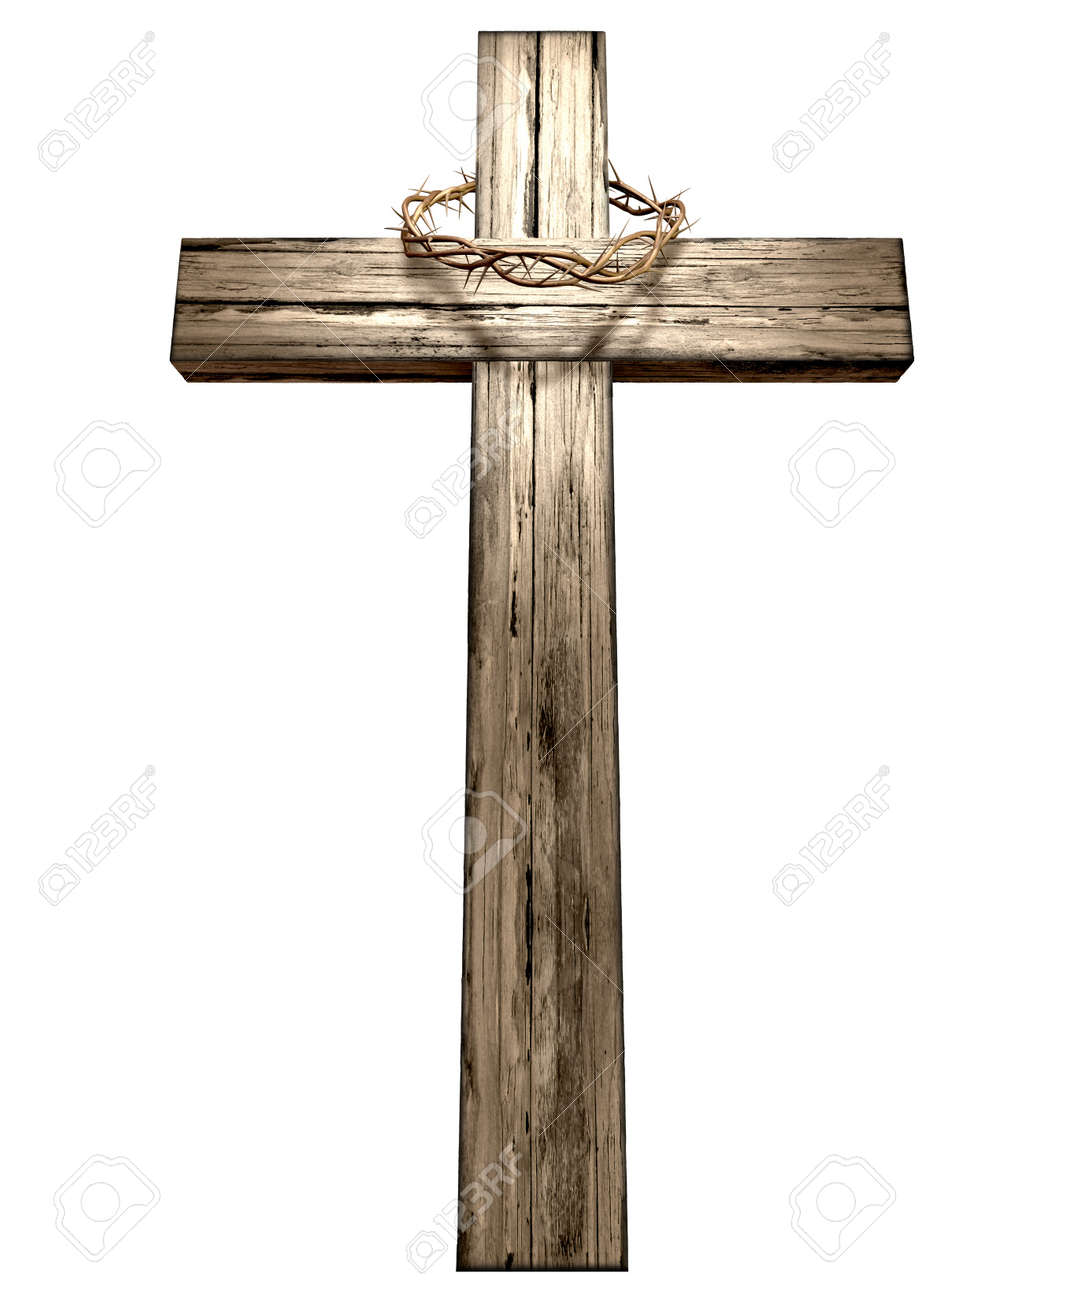 A wooden cross that has a christian woven crown of thorns on it depicting the crucifixion on an isolated background Stock Photo - 17794194